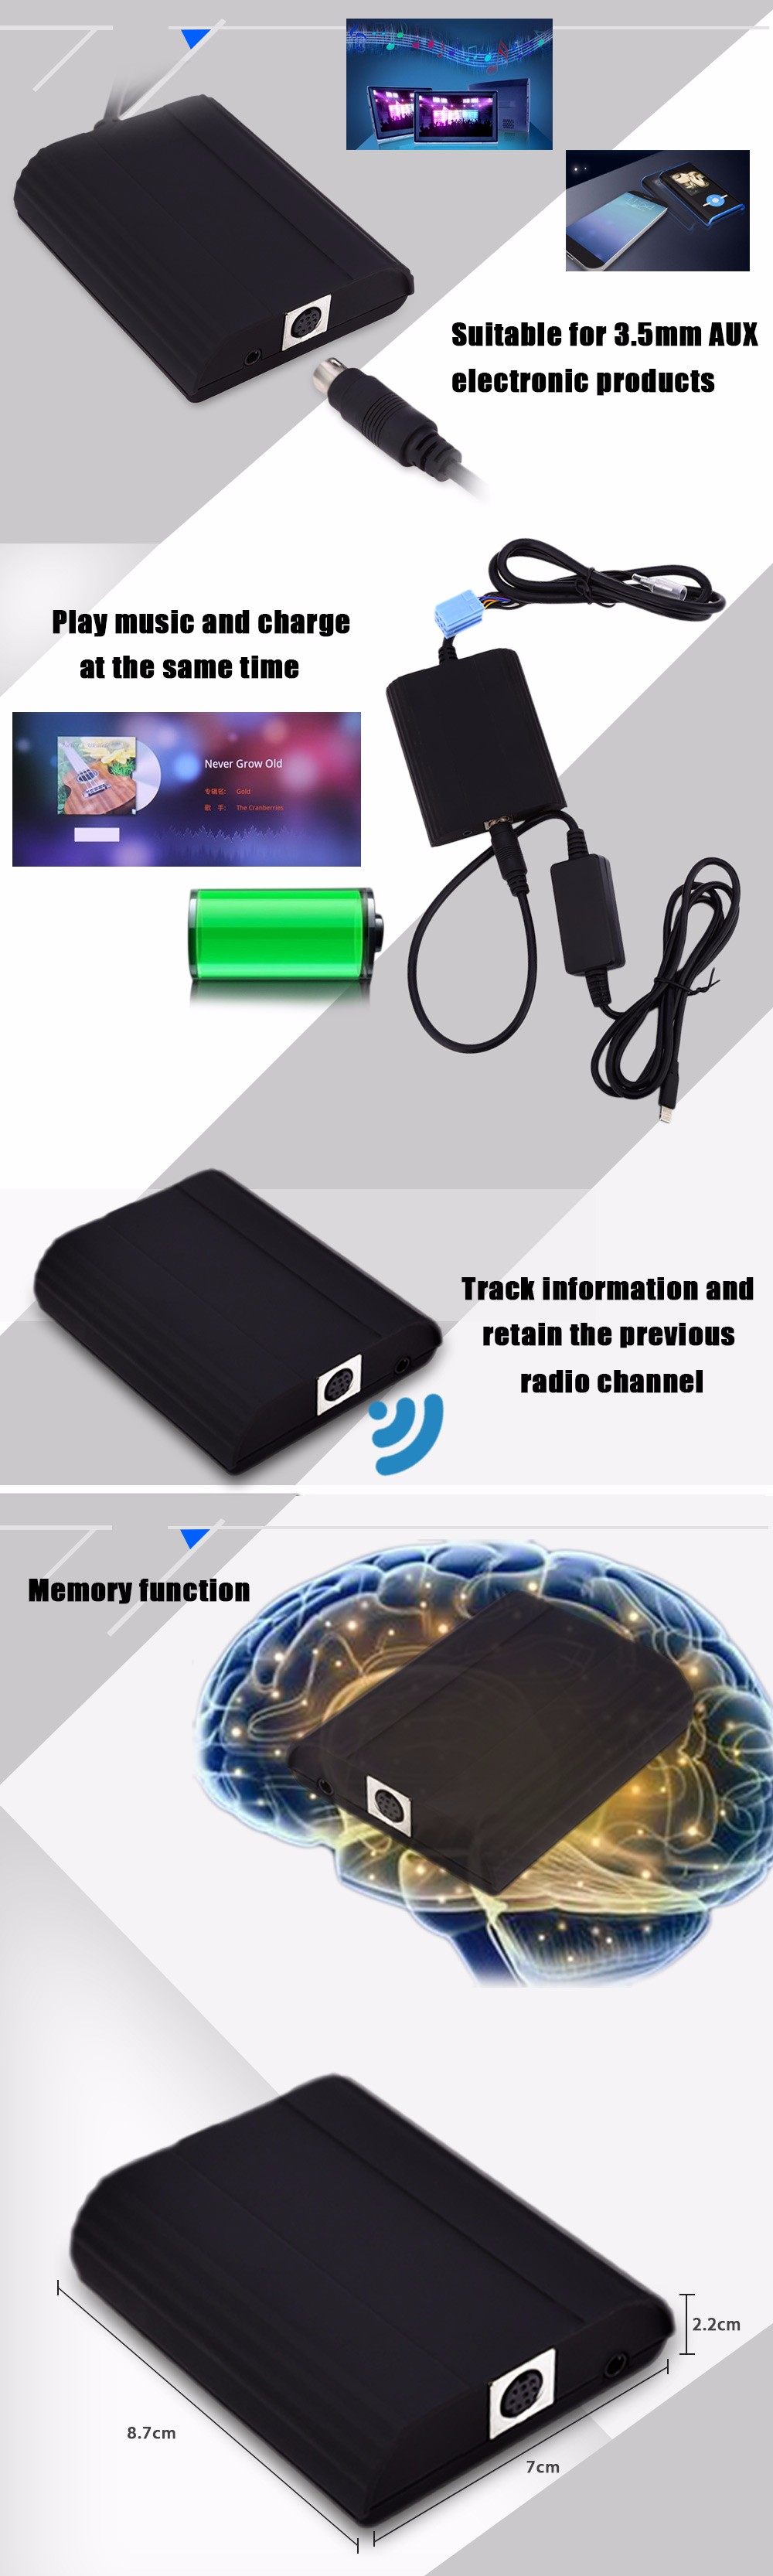 WT - IP5 Car Charger Adapter for Mazda Vehicle MP3 Player Digital CD Box